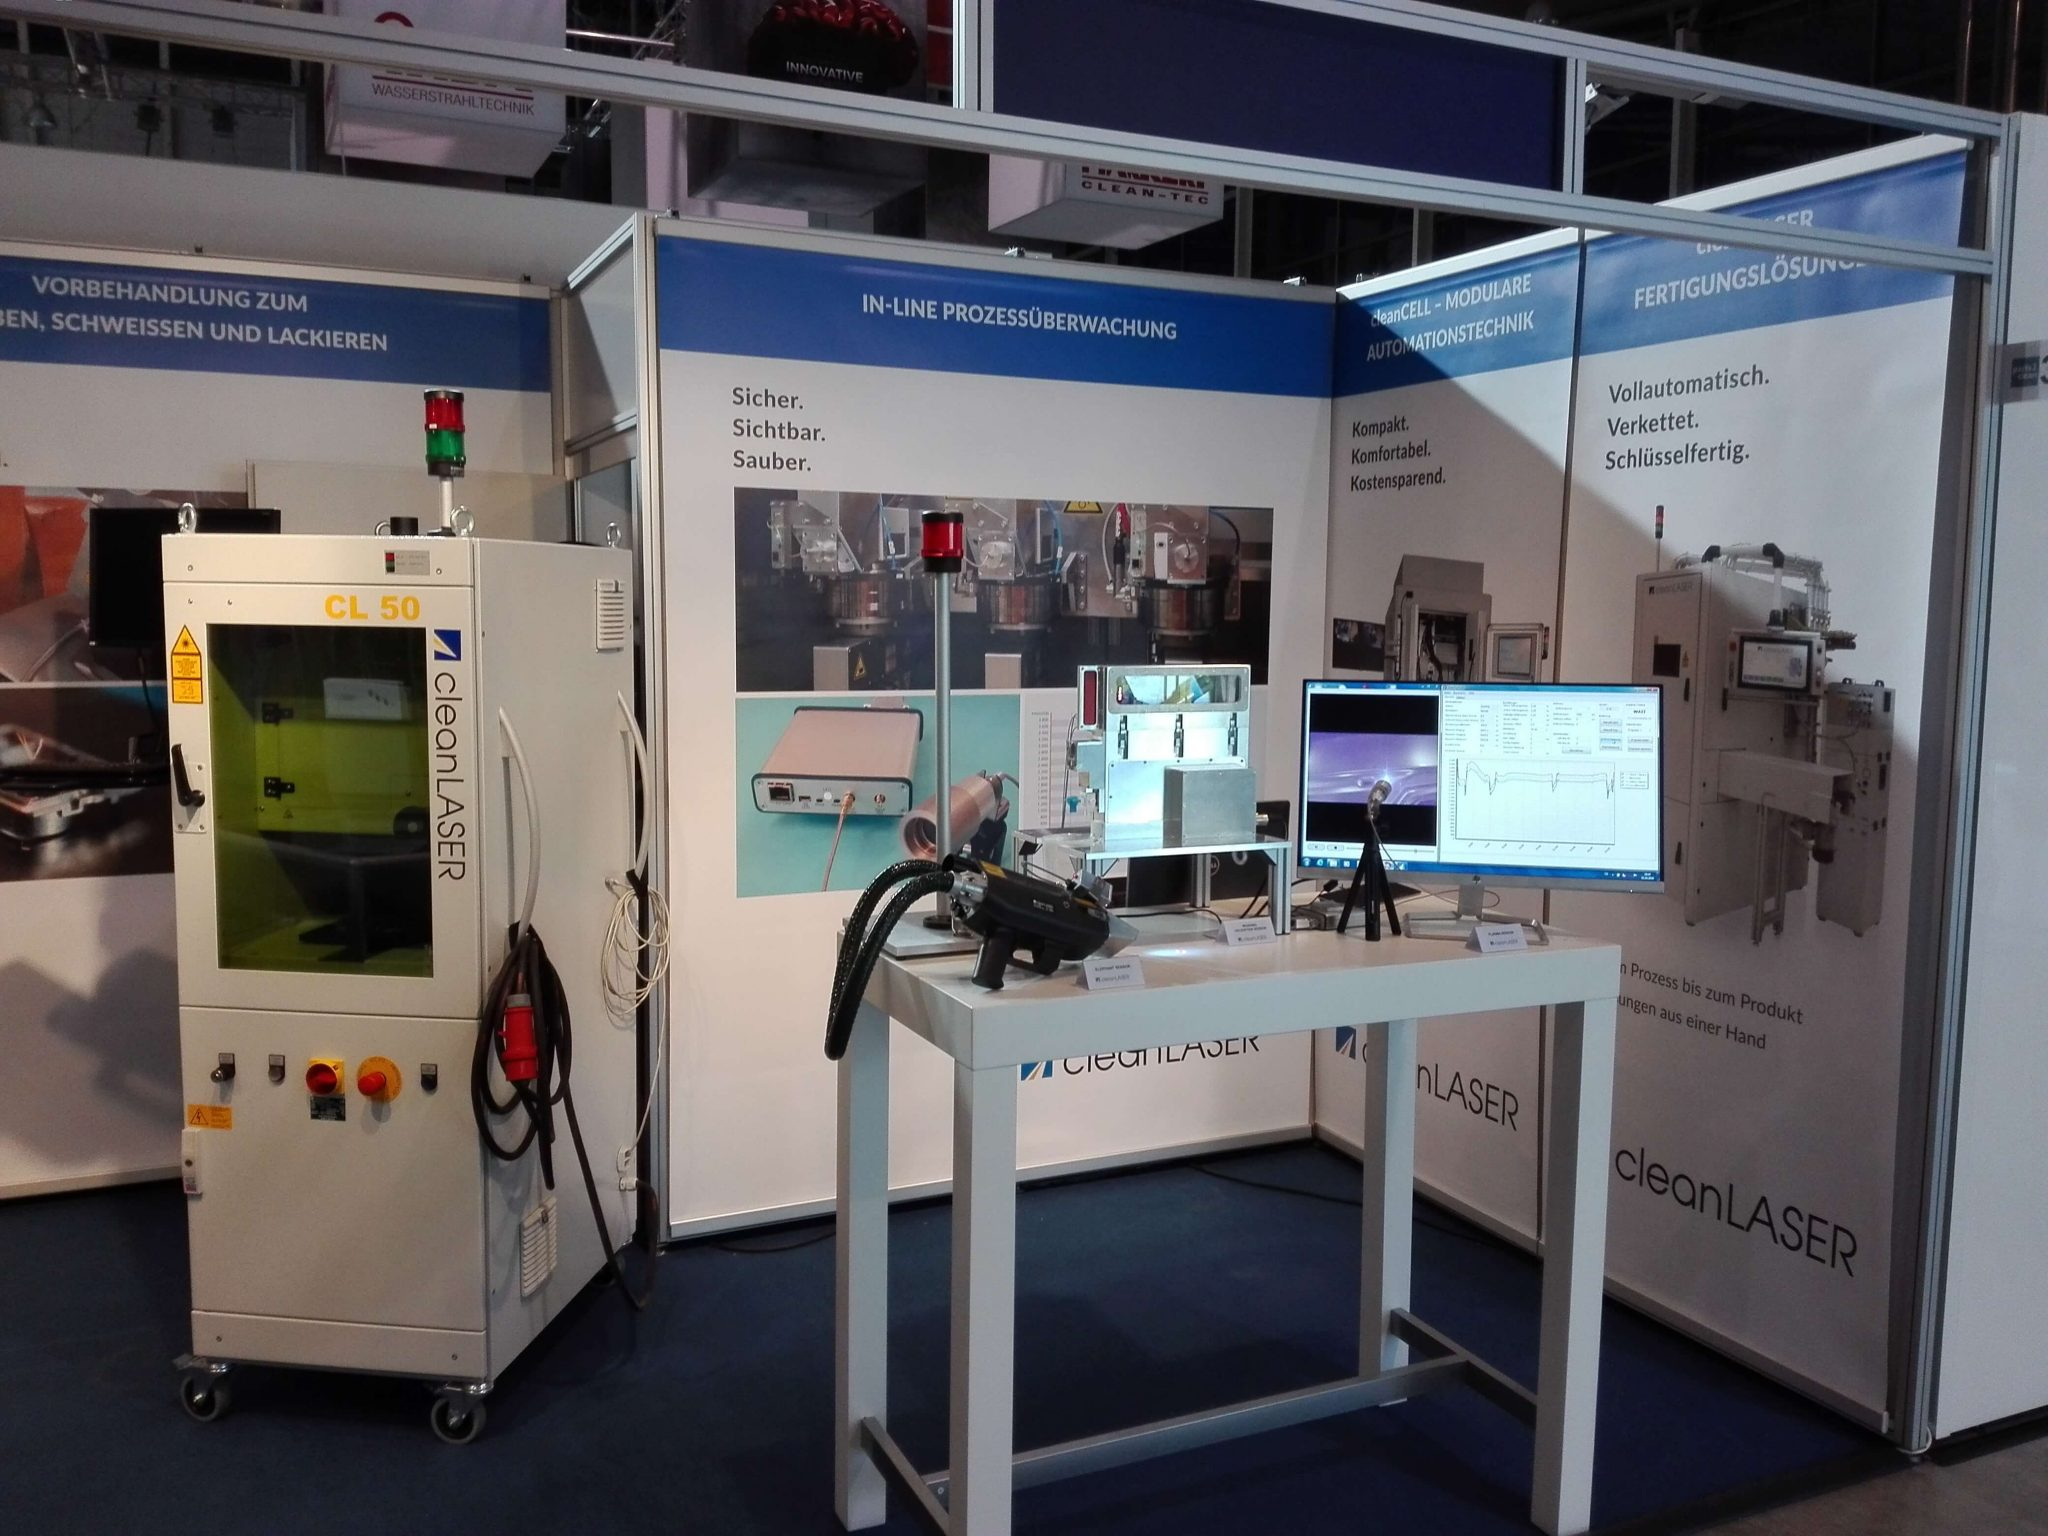 cleanLASER Messestand parts2clean Stuttgart